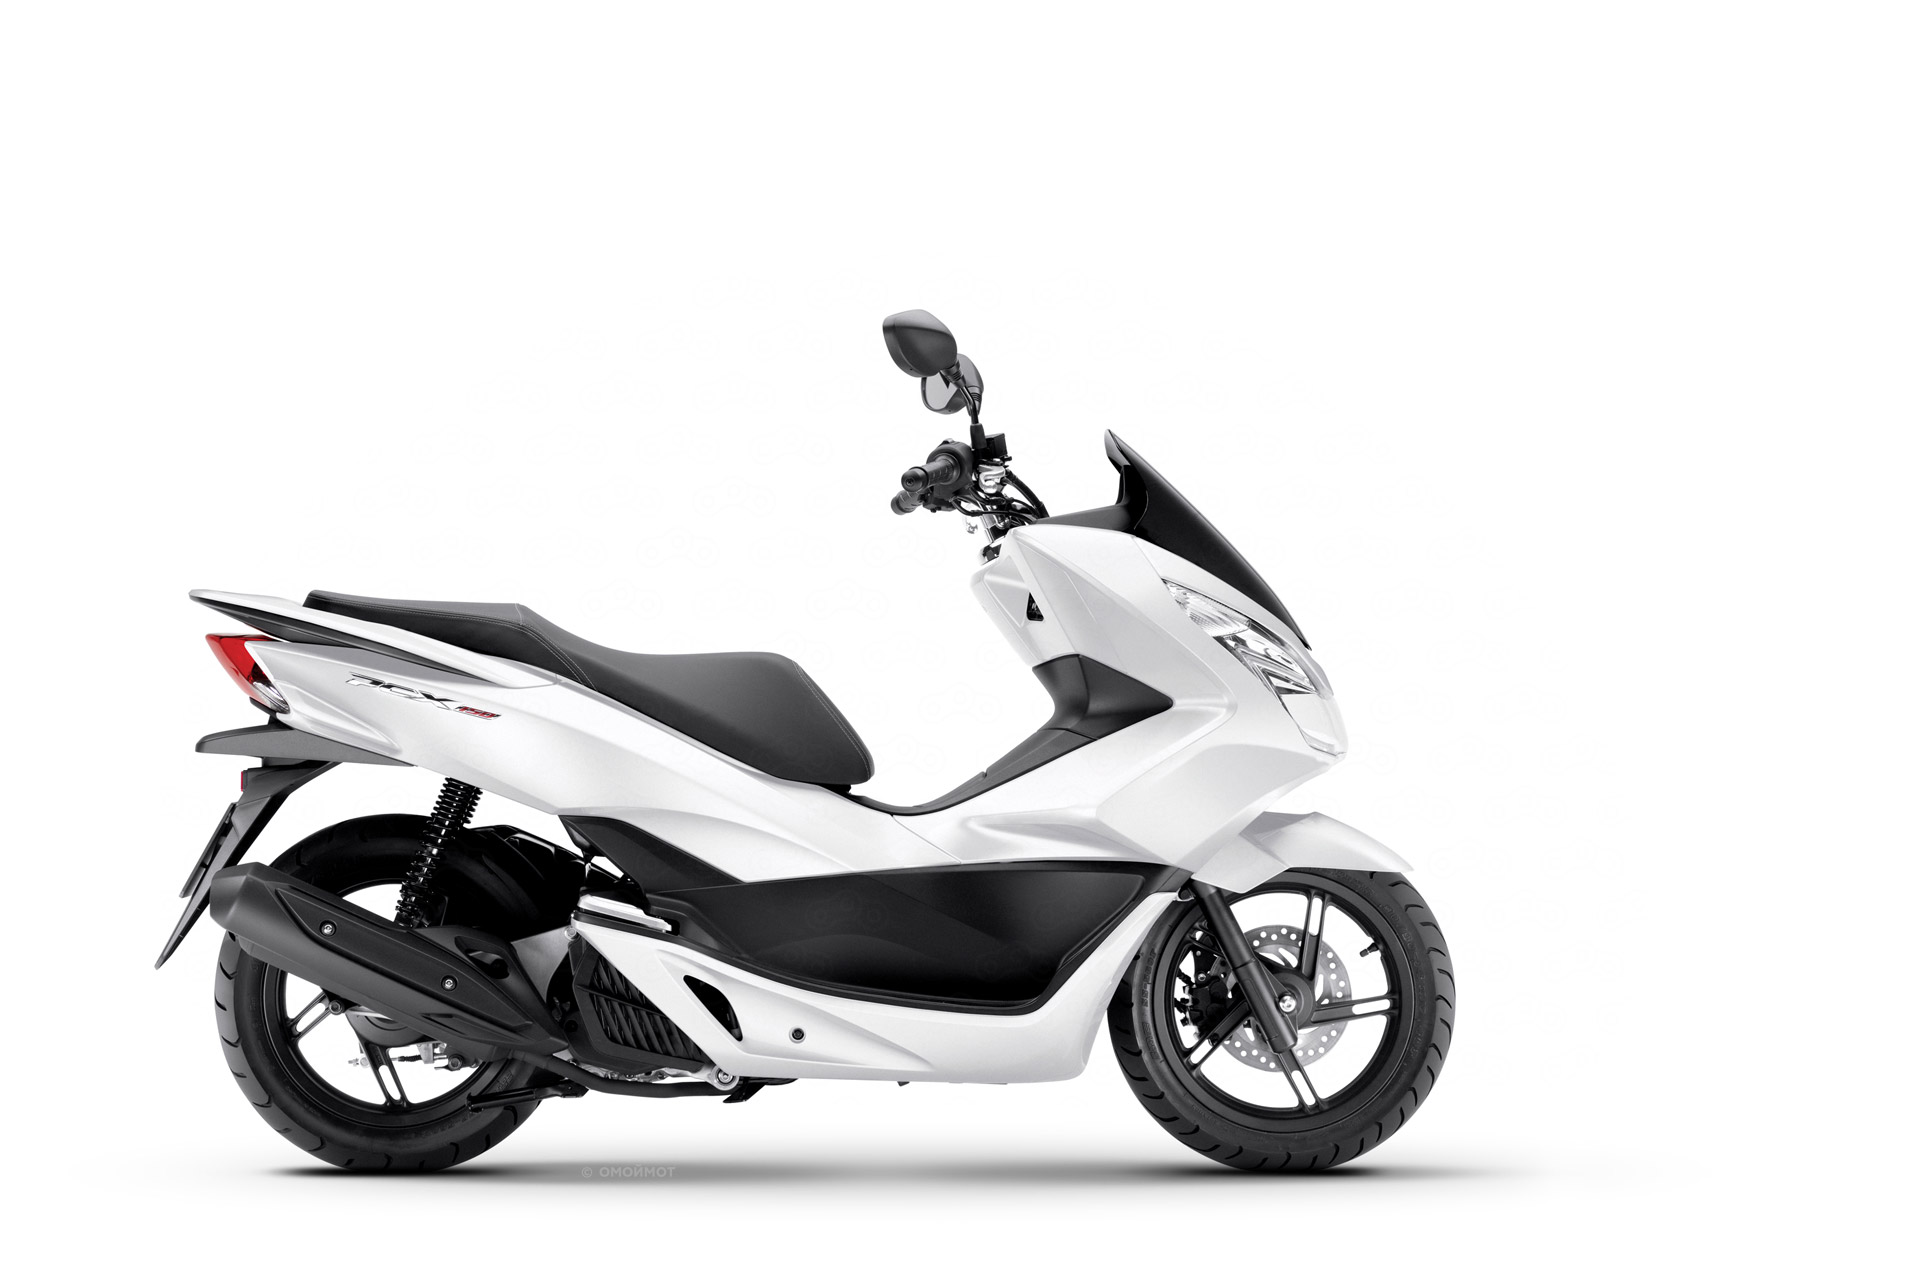 s spec launches pcx rhf europe scooter honda